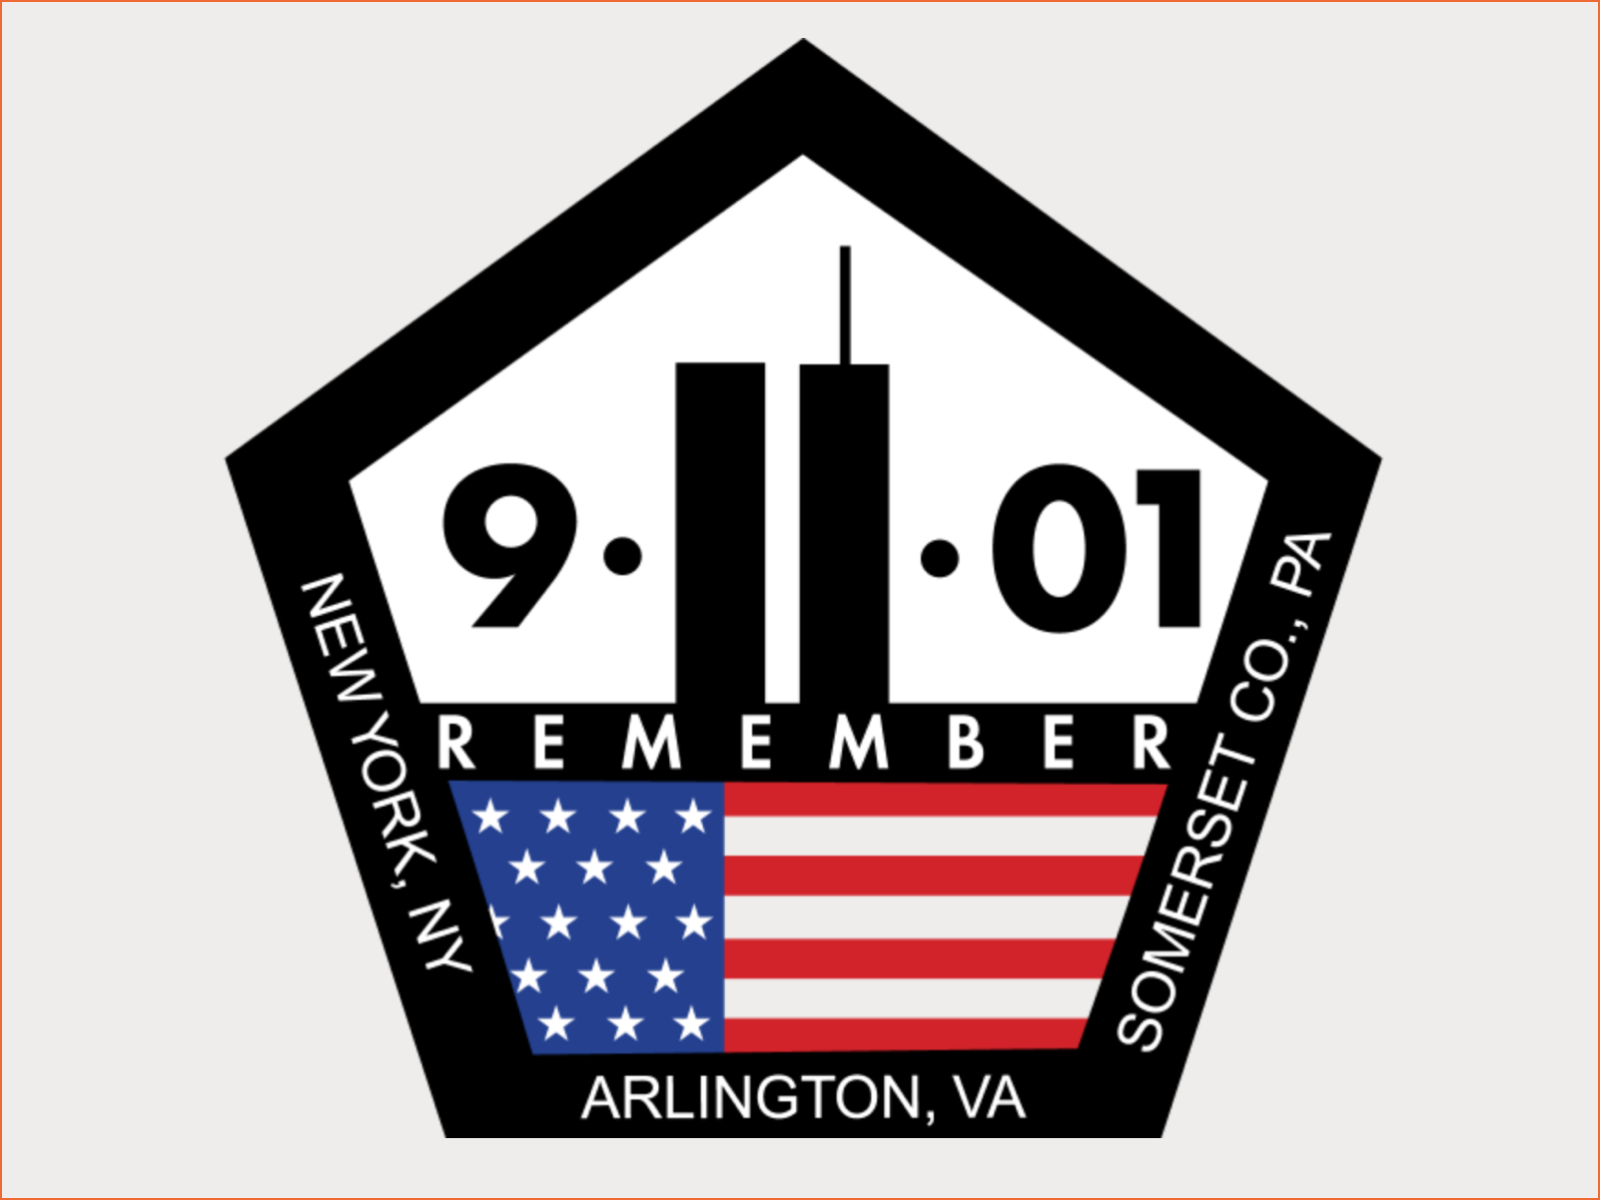 Remember 9/11 logo designer Dave Parenteau